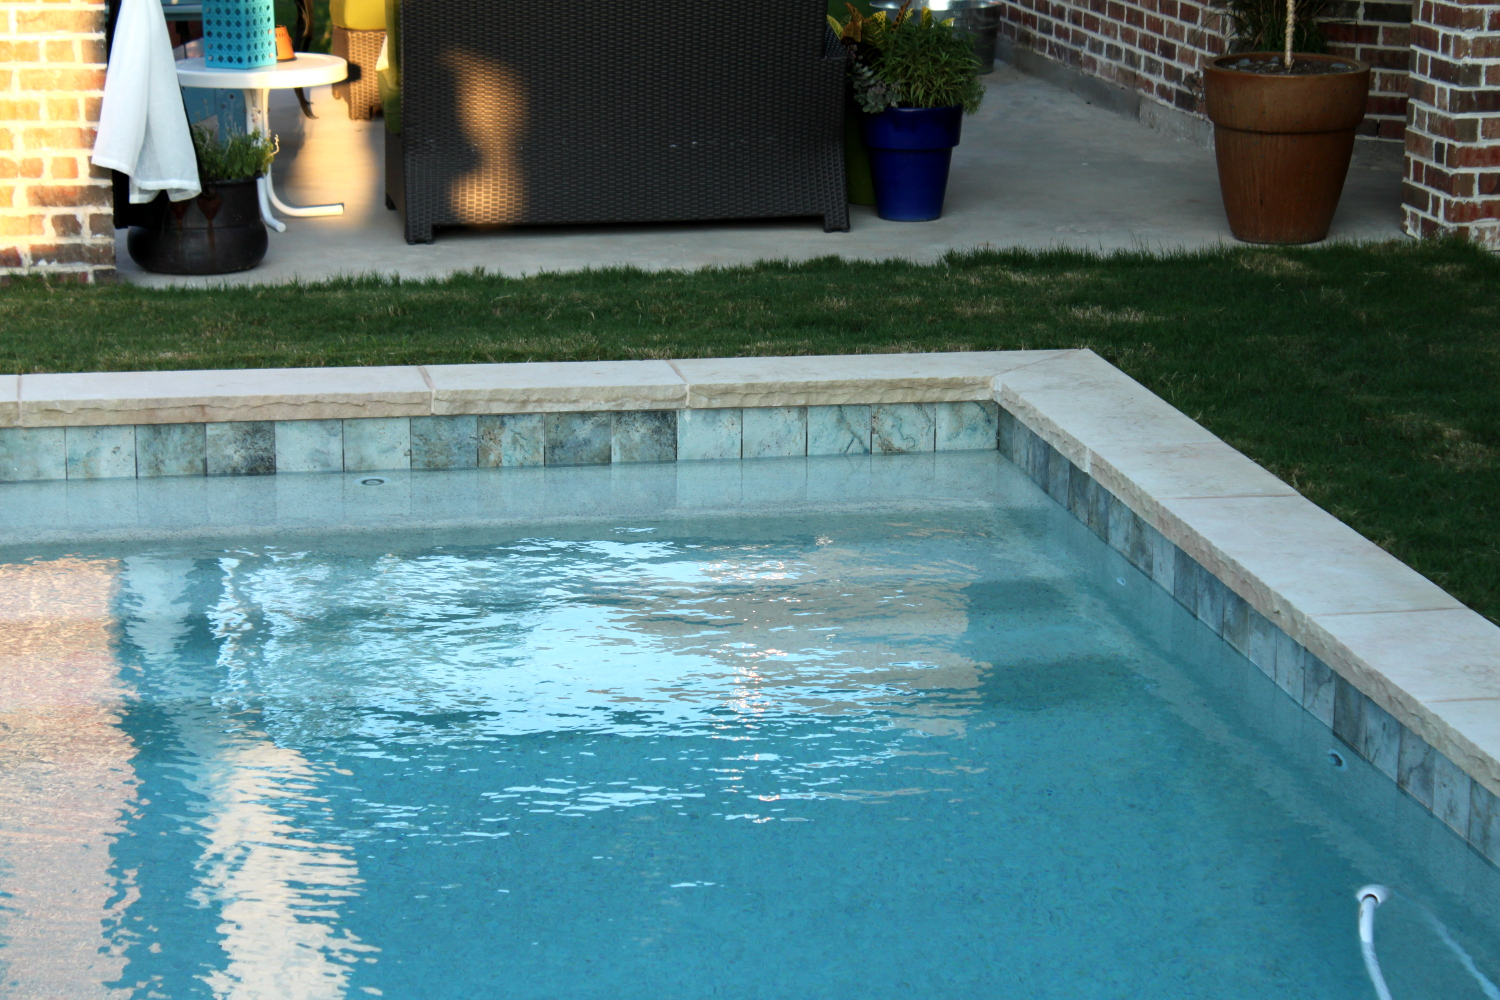 Water Pool Tiles : Pixelimpress the backyard and pool reveal